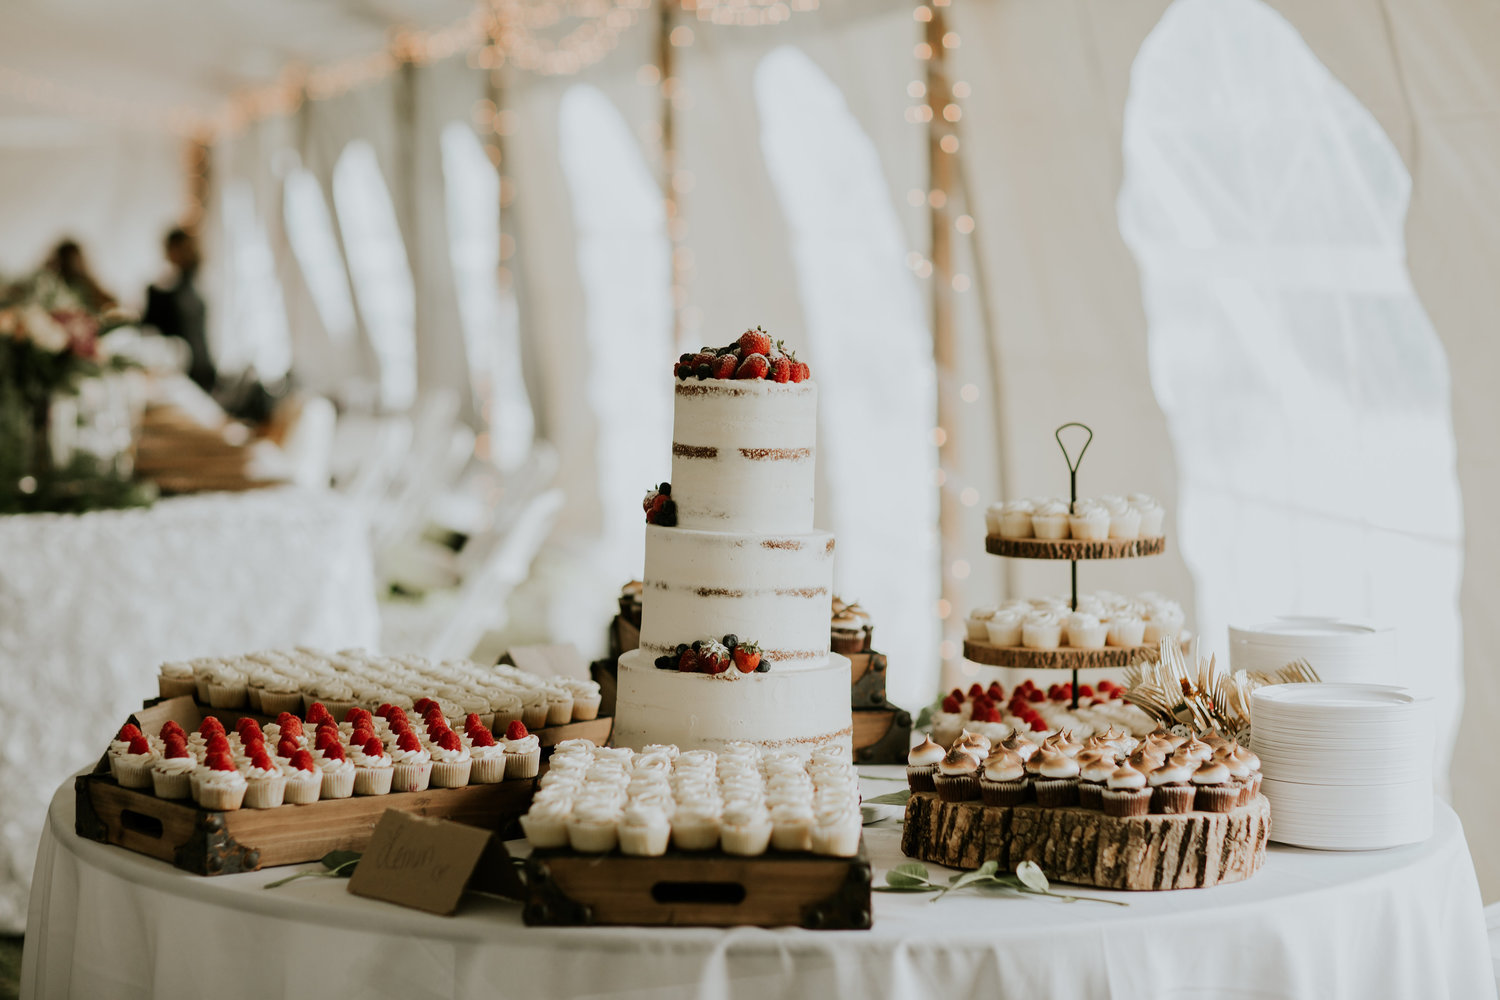 Amys Cupcakes | Vendor Highlight | Laine Palm Designs